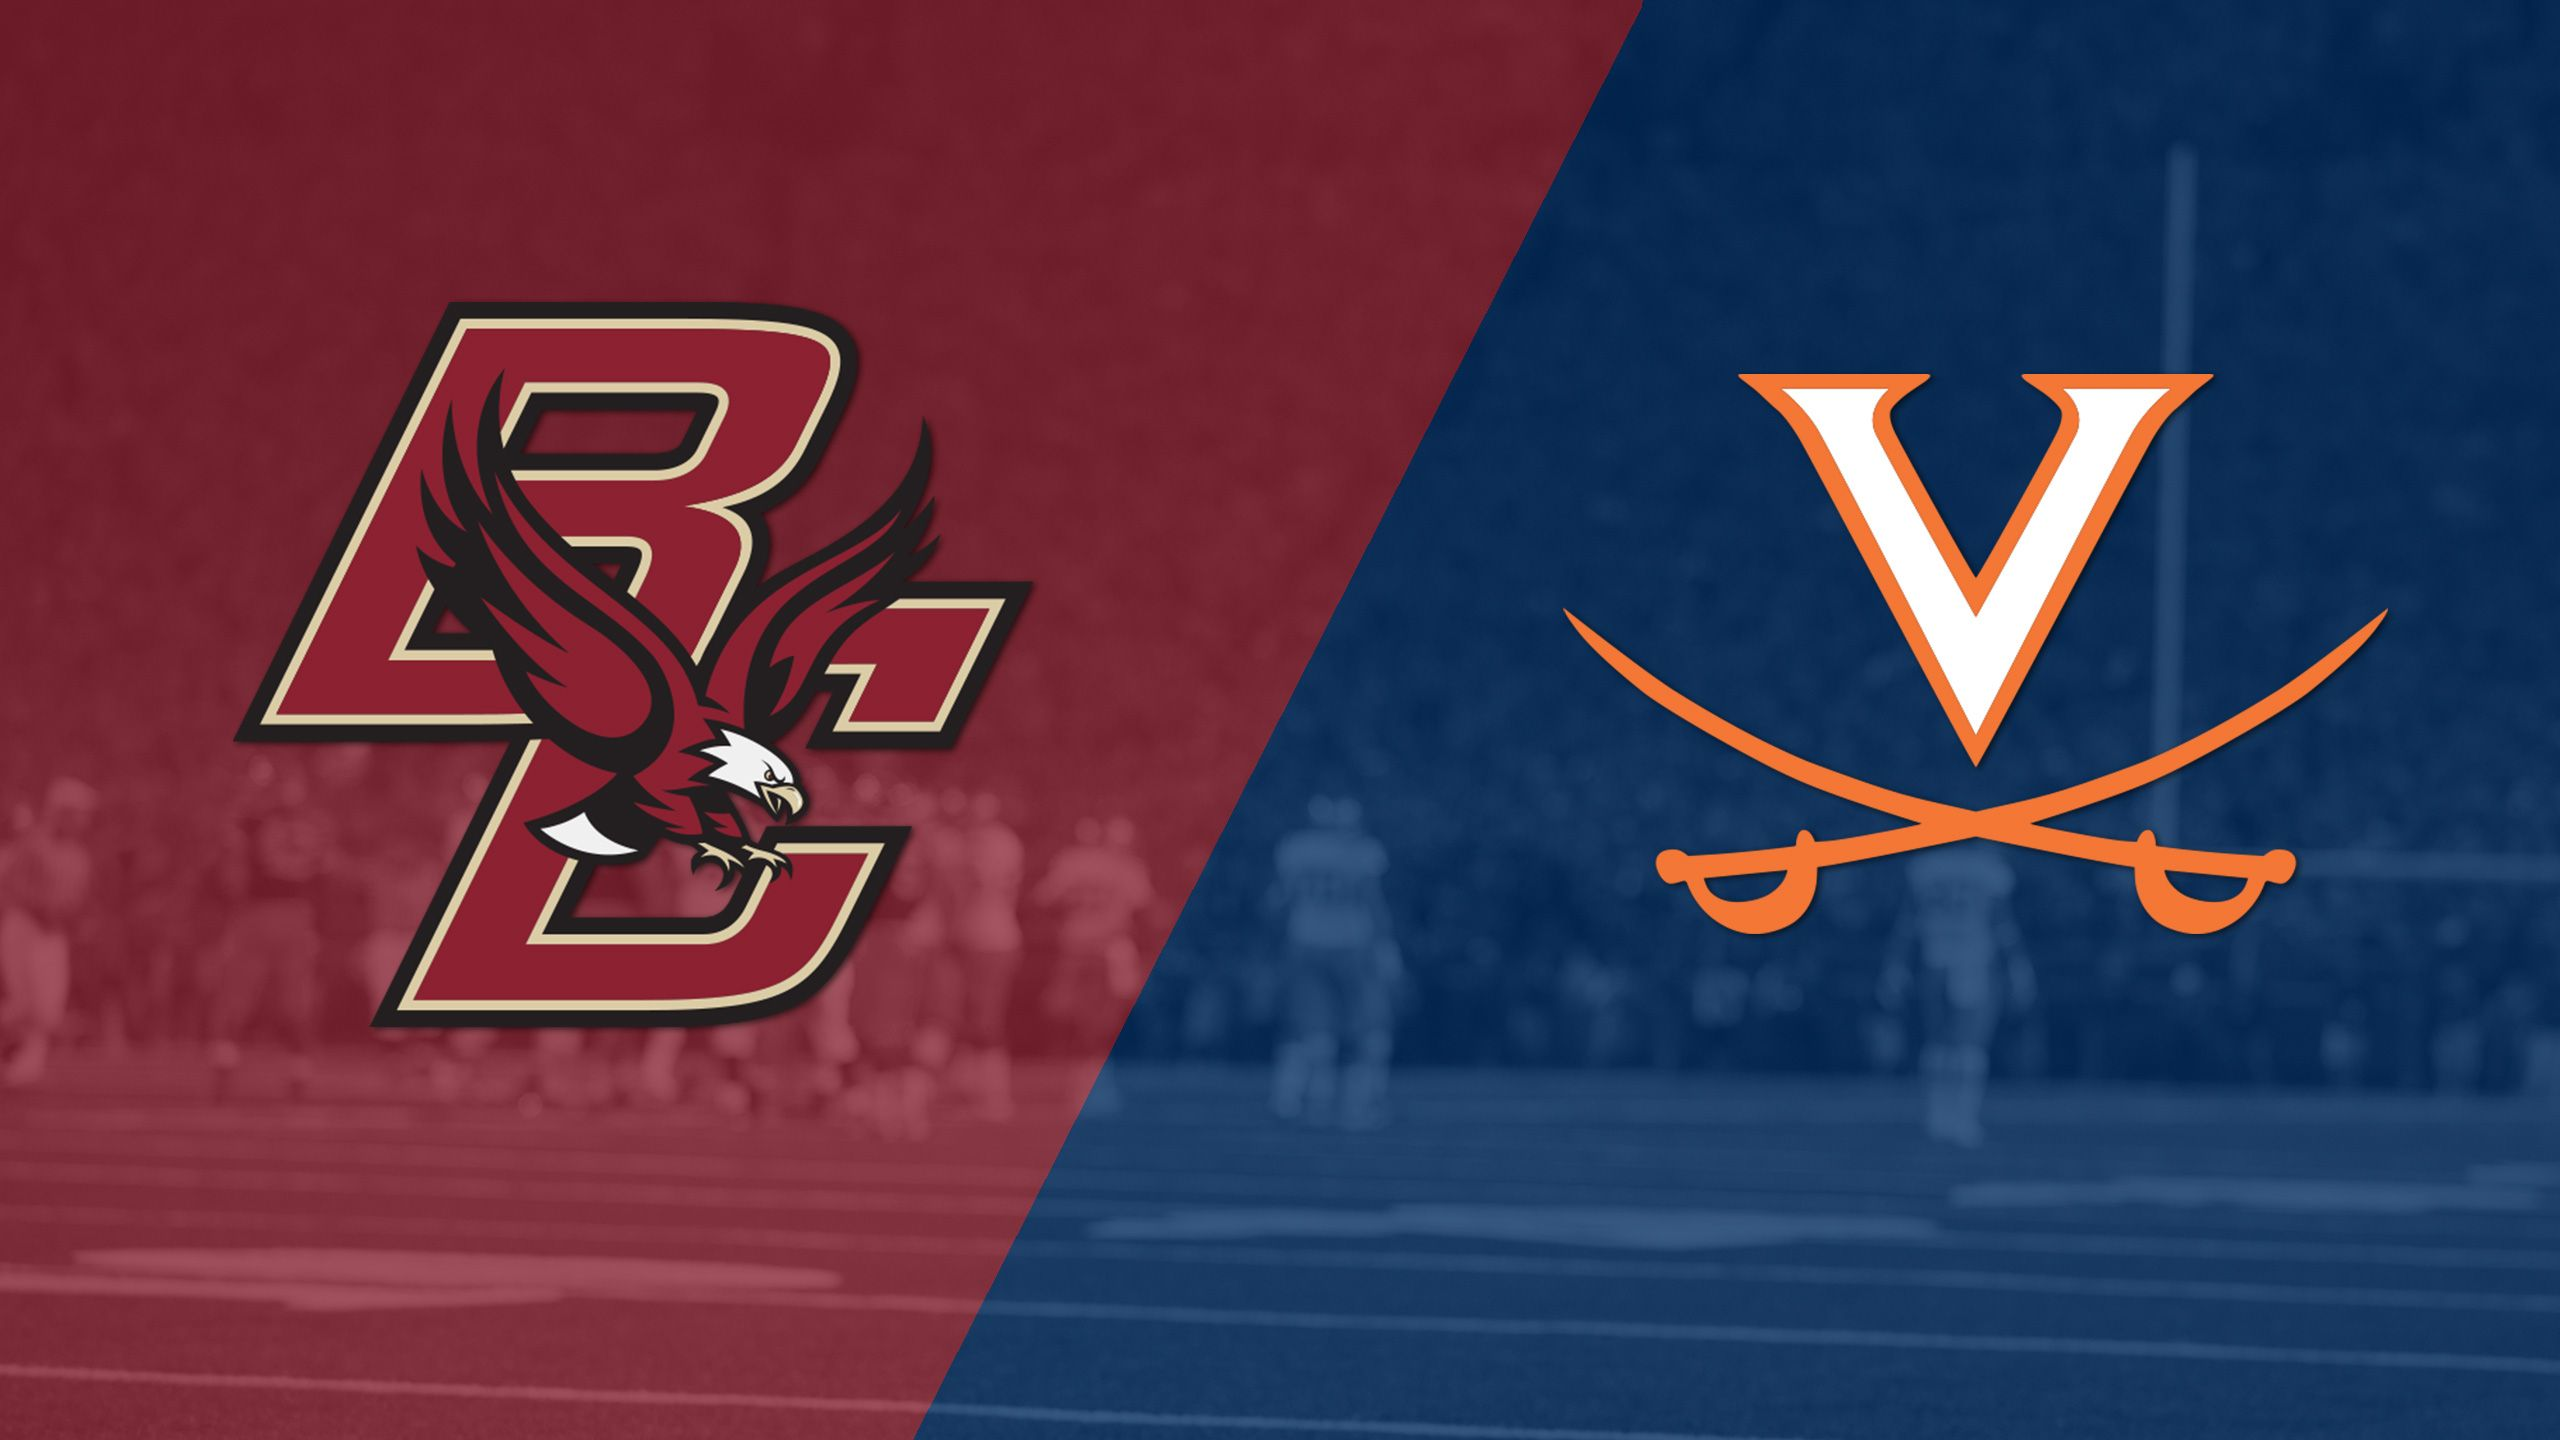 Boston College vs. Virginia (Football)